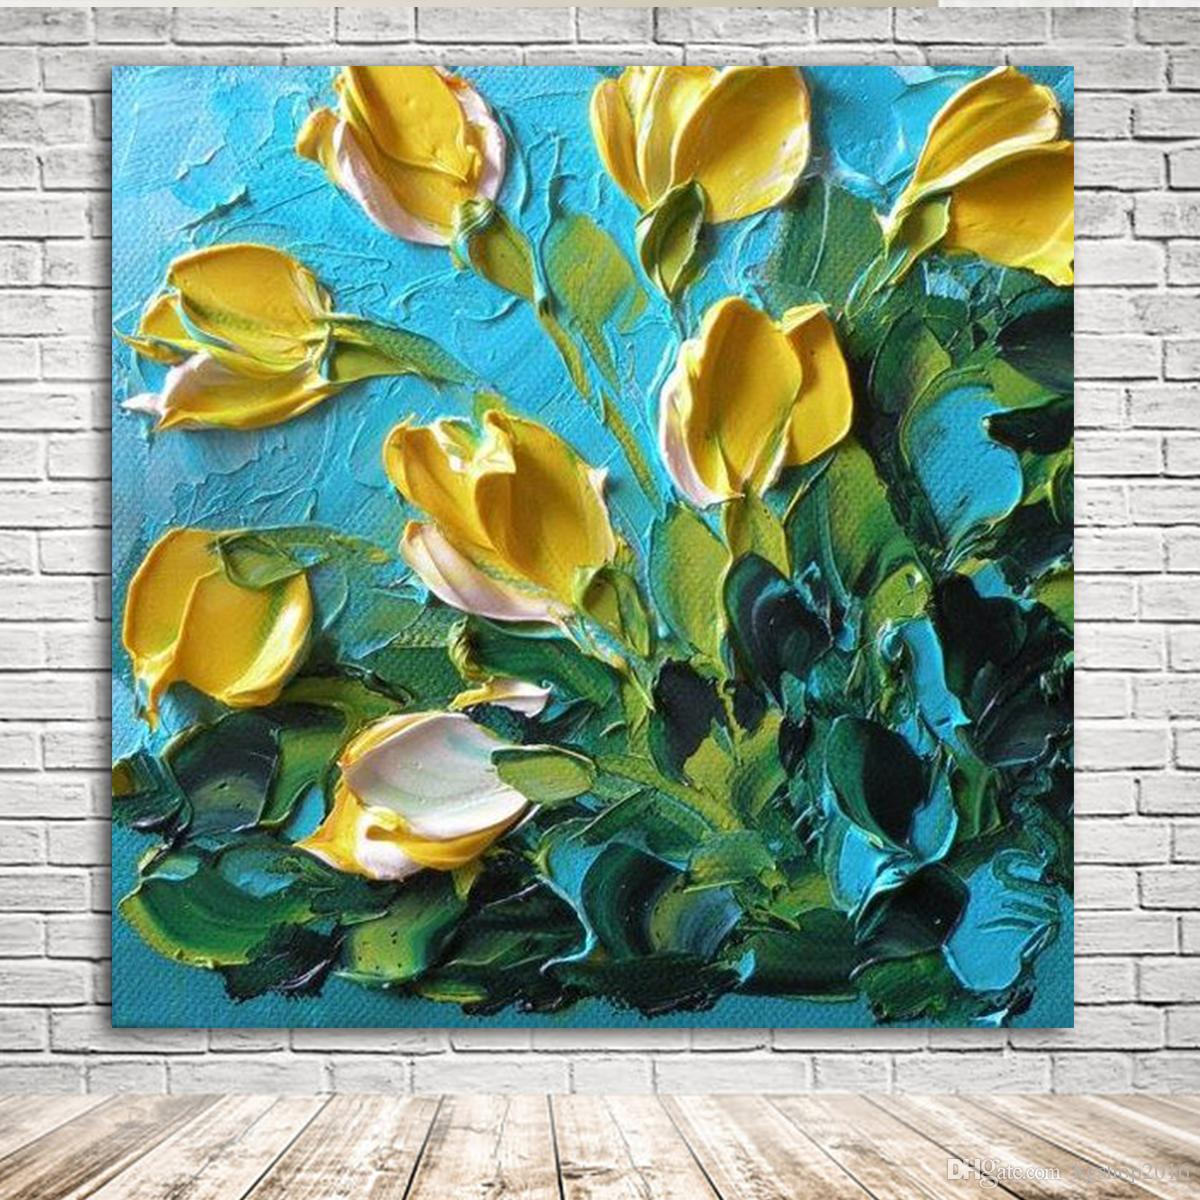 KGTECH 3D Thick Texured Acrylic Painting Yellow Tulip Flowers Wall ...